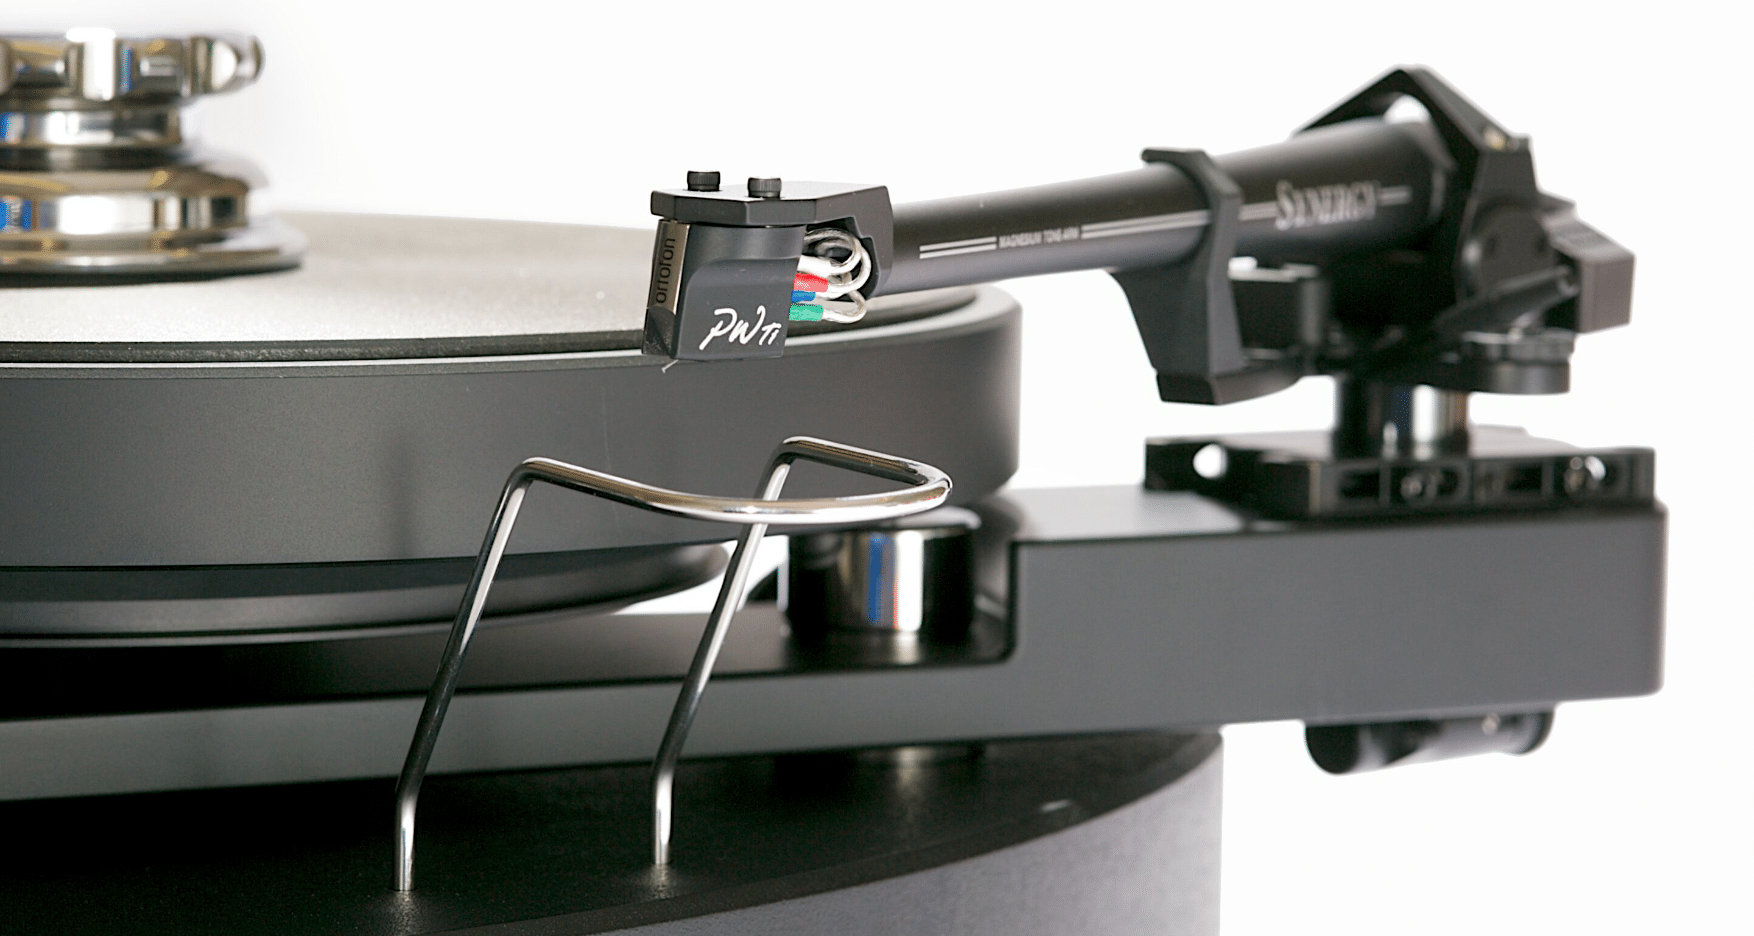 Synergy integrated turntable From SME - The Audiophile Man | Turntable,  Phono cartridge, Sme